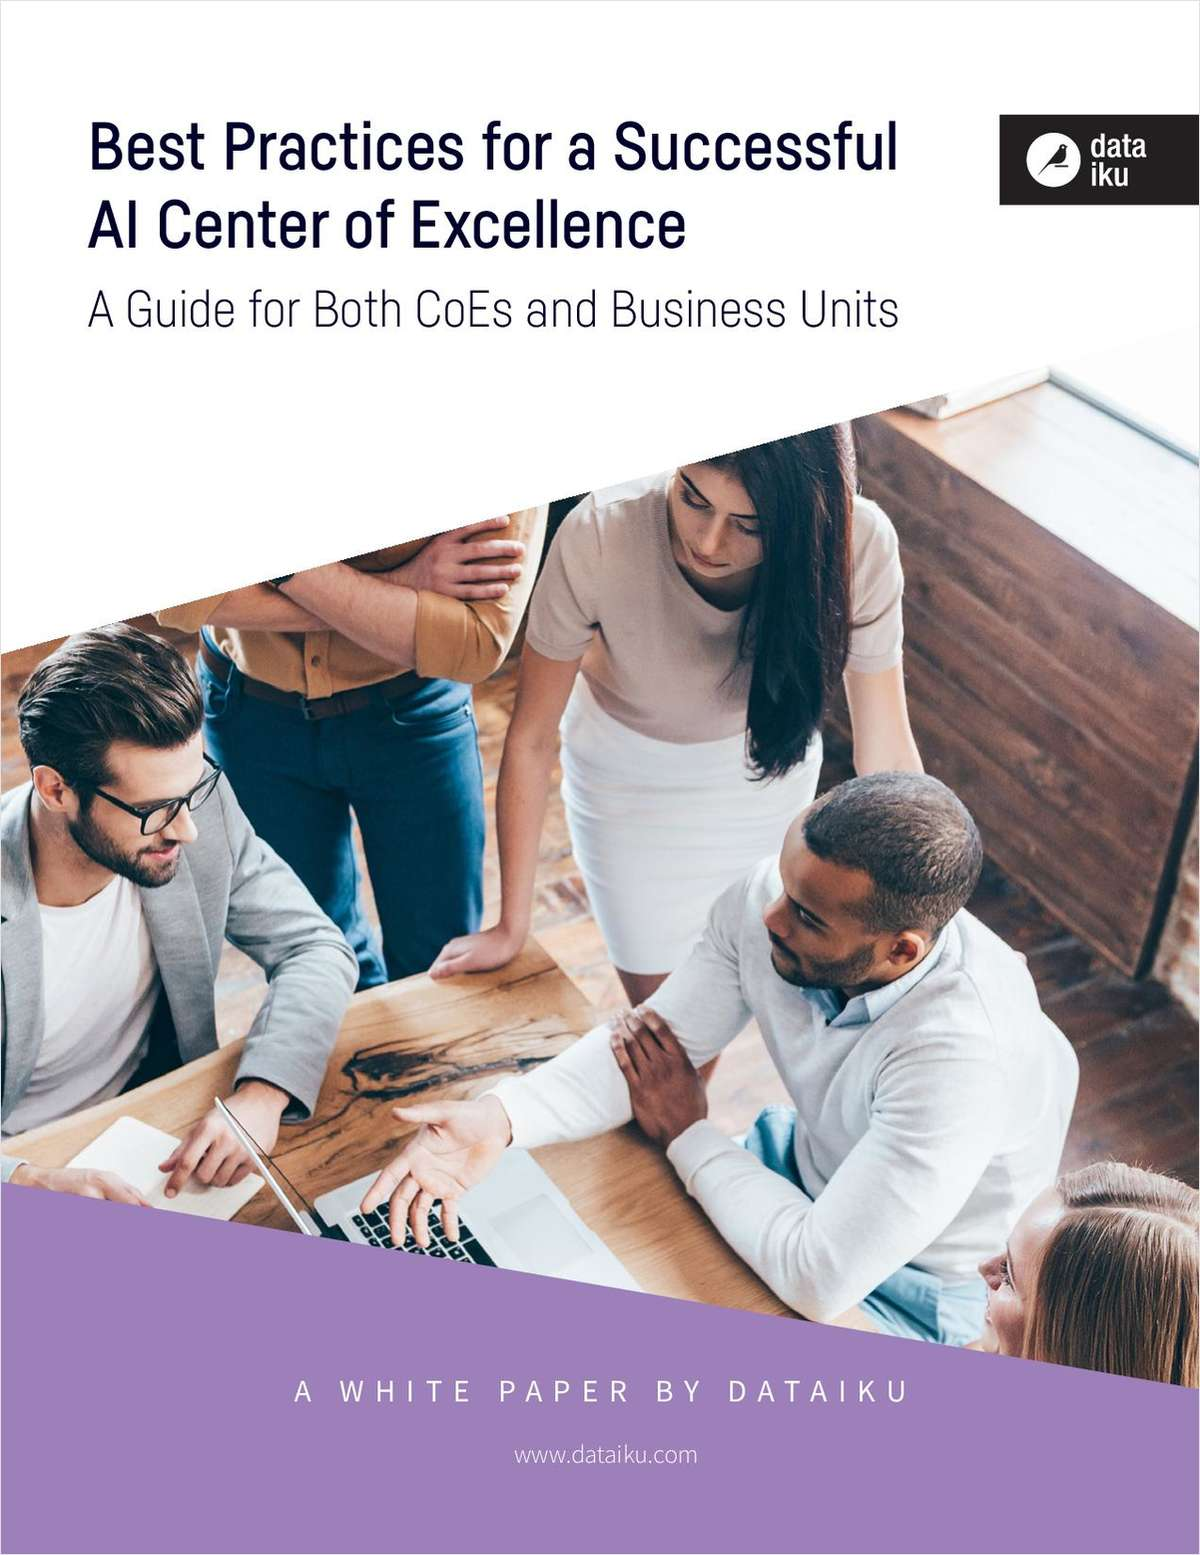 Best Practices for a Successful AI Center of Excellence: A Guide for Both CoEs and Business Units